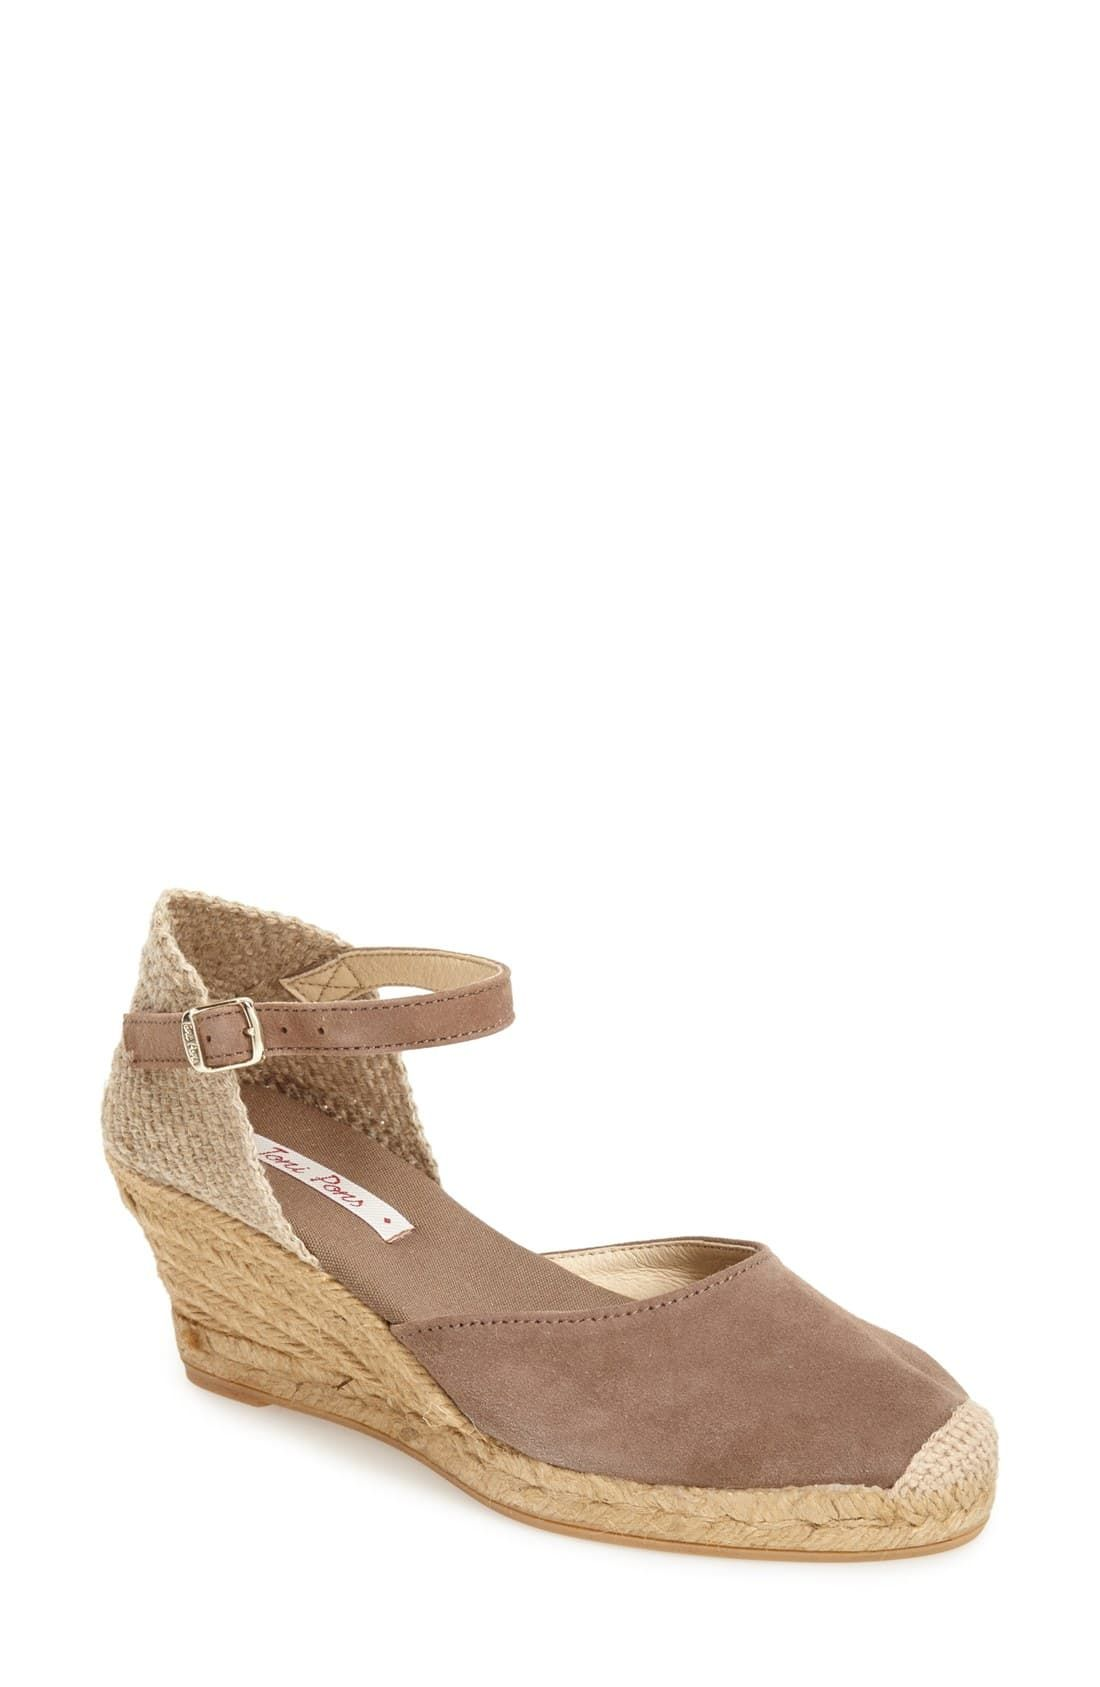 31872166141 Toni Pons 'Lloret-5' Espadrille Wedge Sandal in 2019 | Products ...